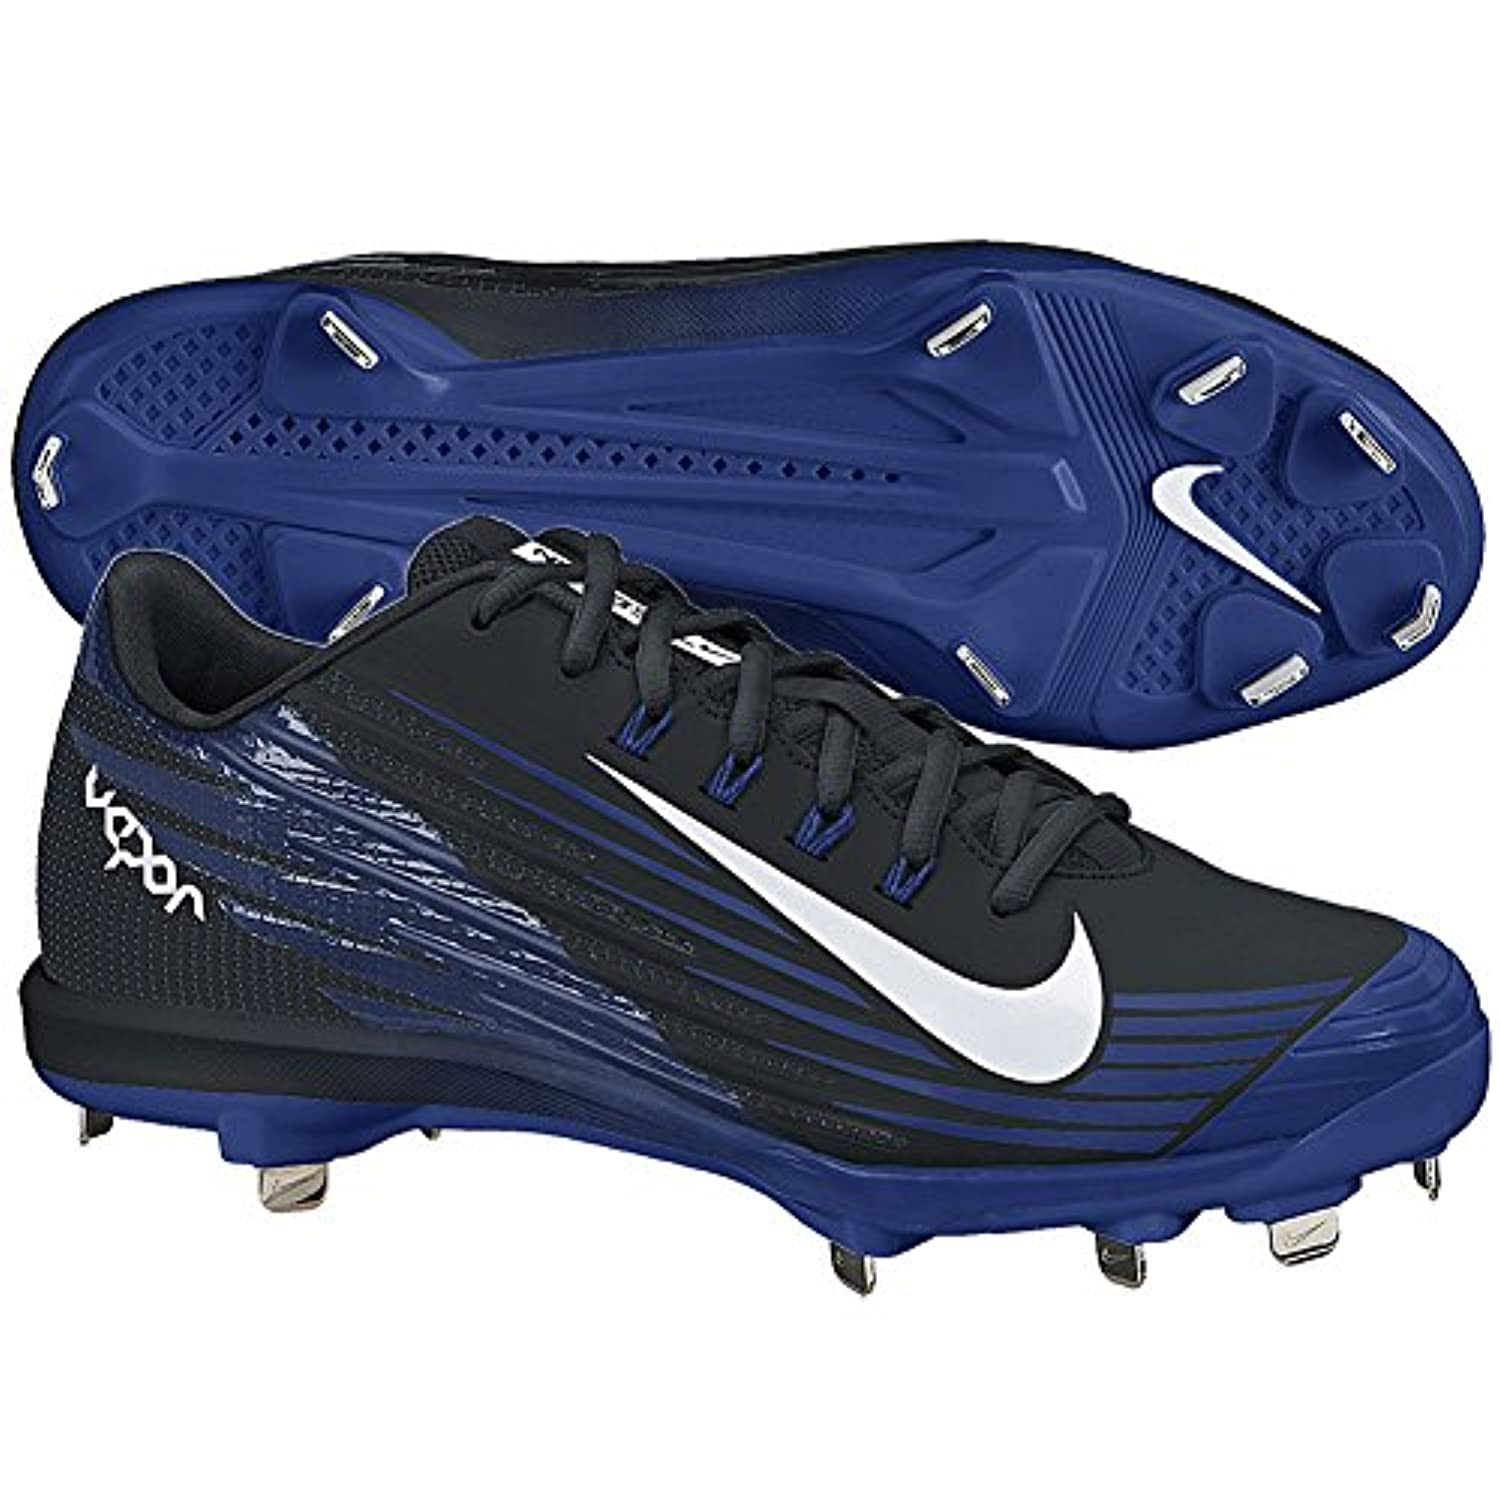 Nike Lunar Vapor Pro Metal Cleats Sz 11 BLACK/RUSH BLUE//WHITE